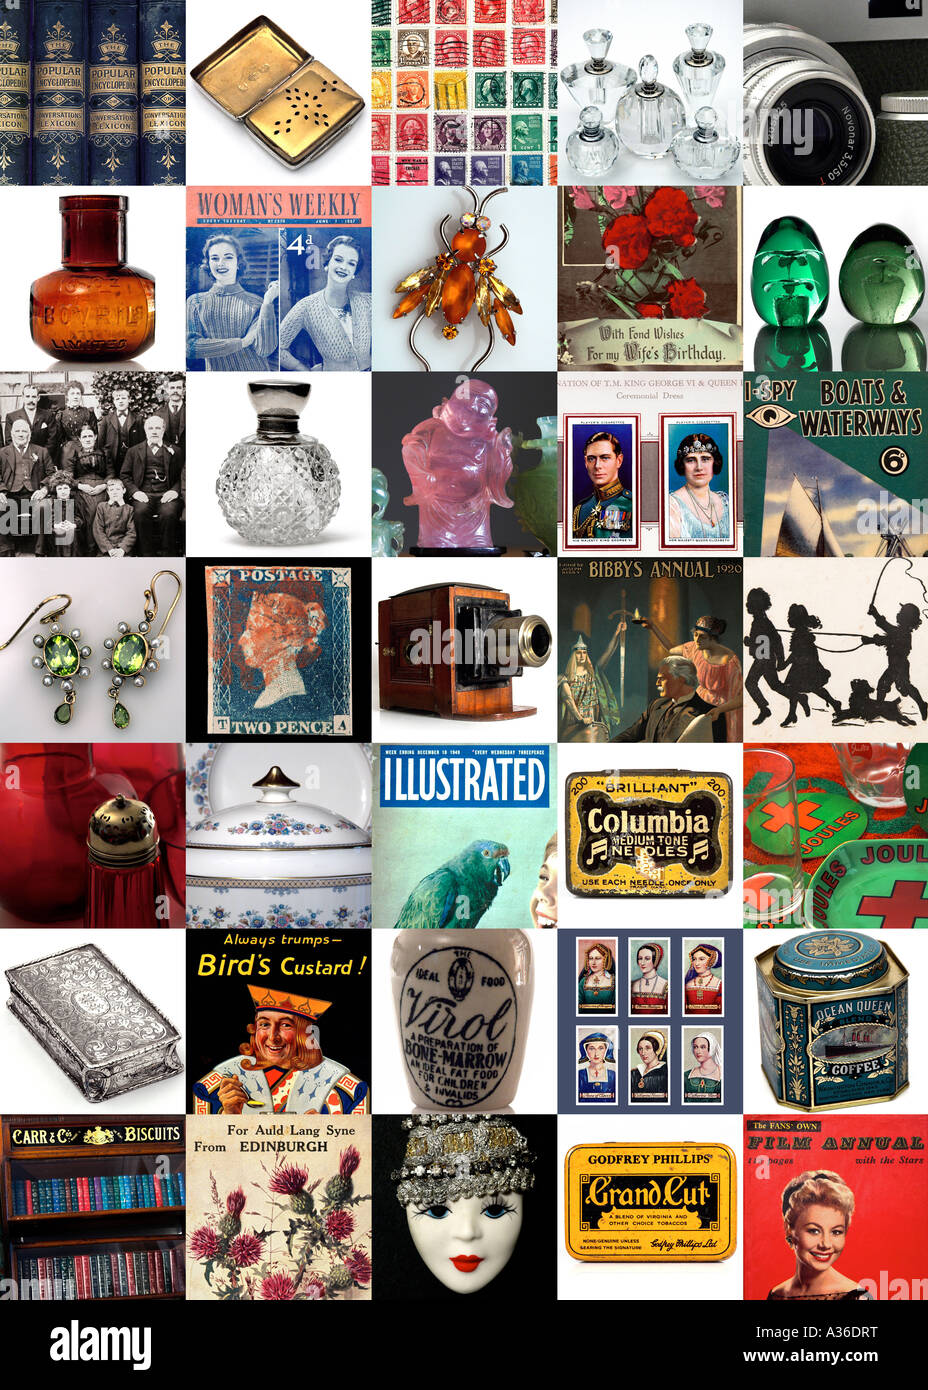 35 image composite of antiques and collectables 2007 EDITORIAL USE ONLY - Stock Image